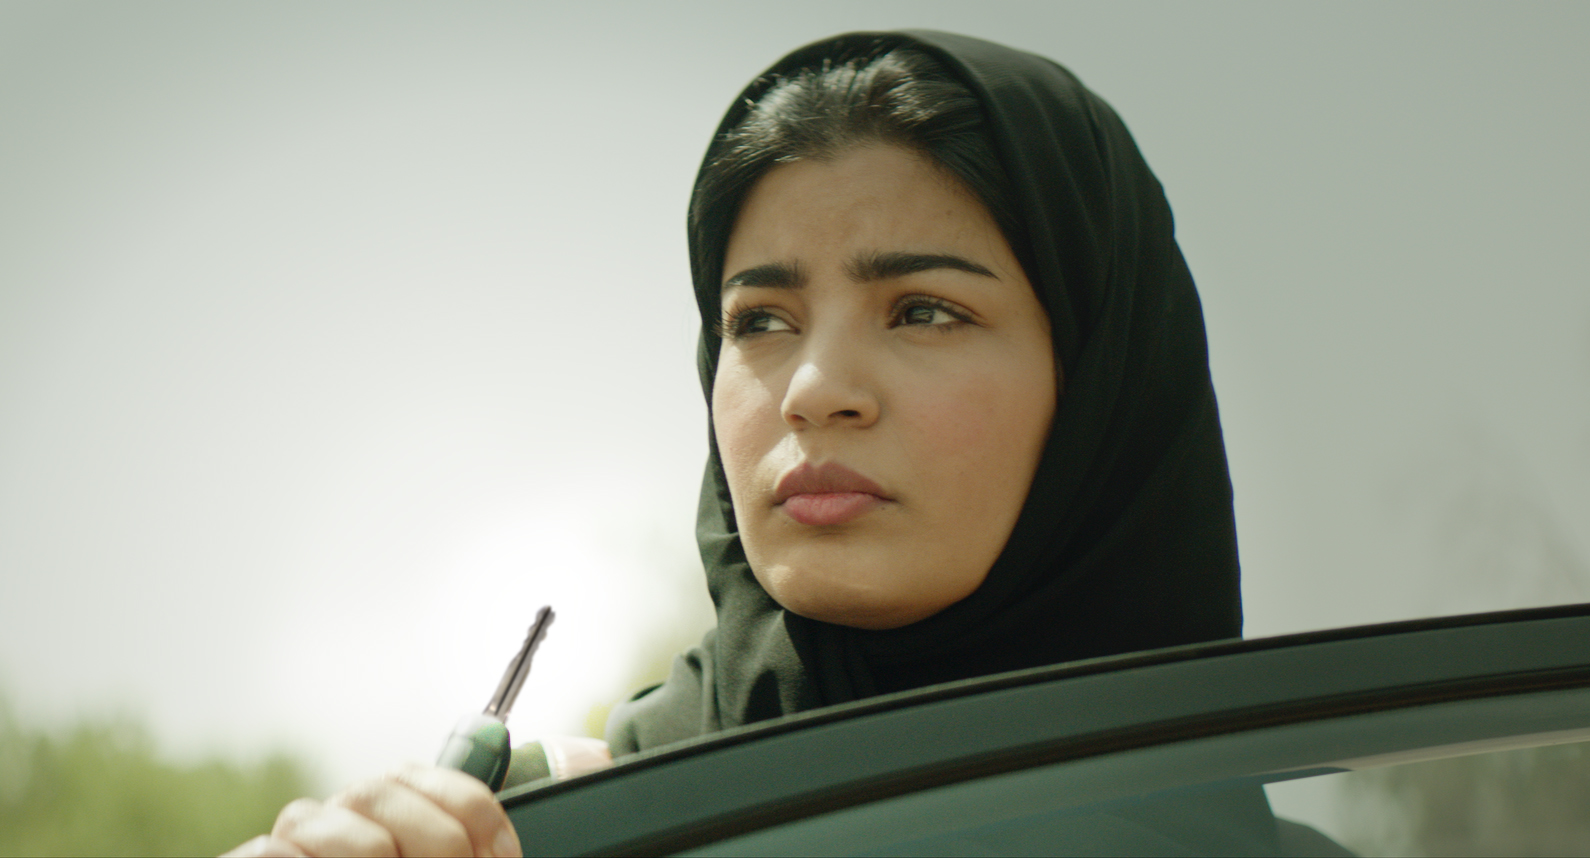 Mila Alzharani in Haifaa al-Mansour's 'The Perfect Candidate' -- photo courtesy of Razor Film, Al-Mansour's Establishment